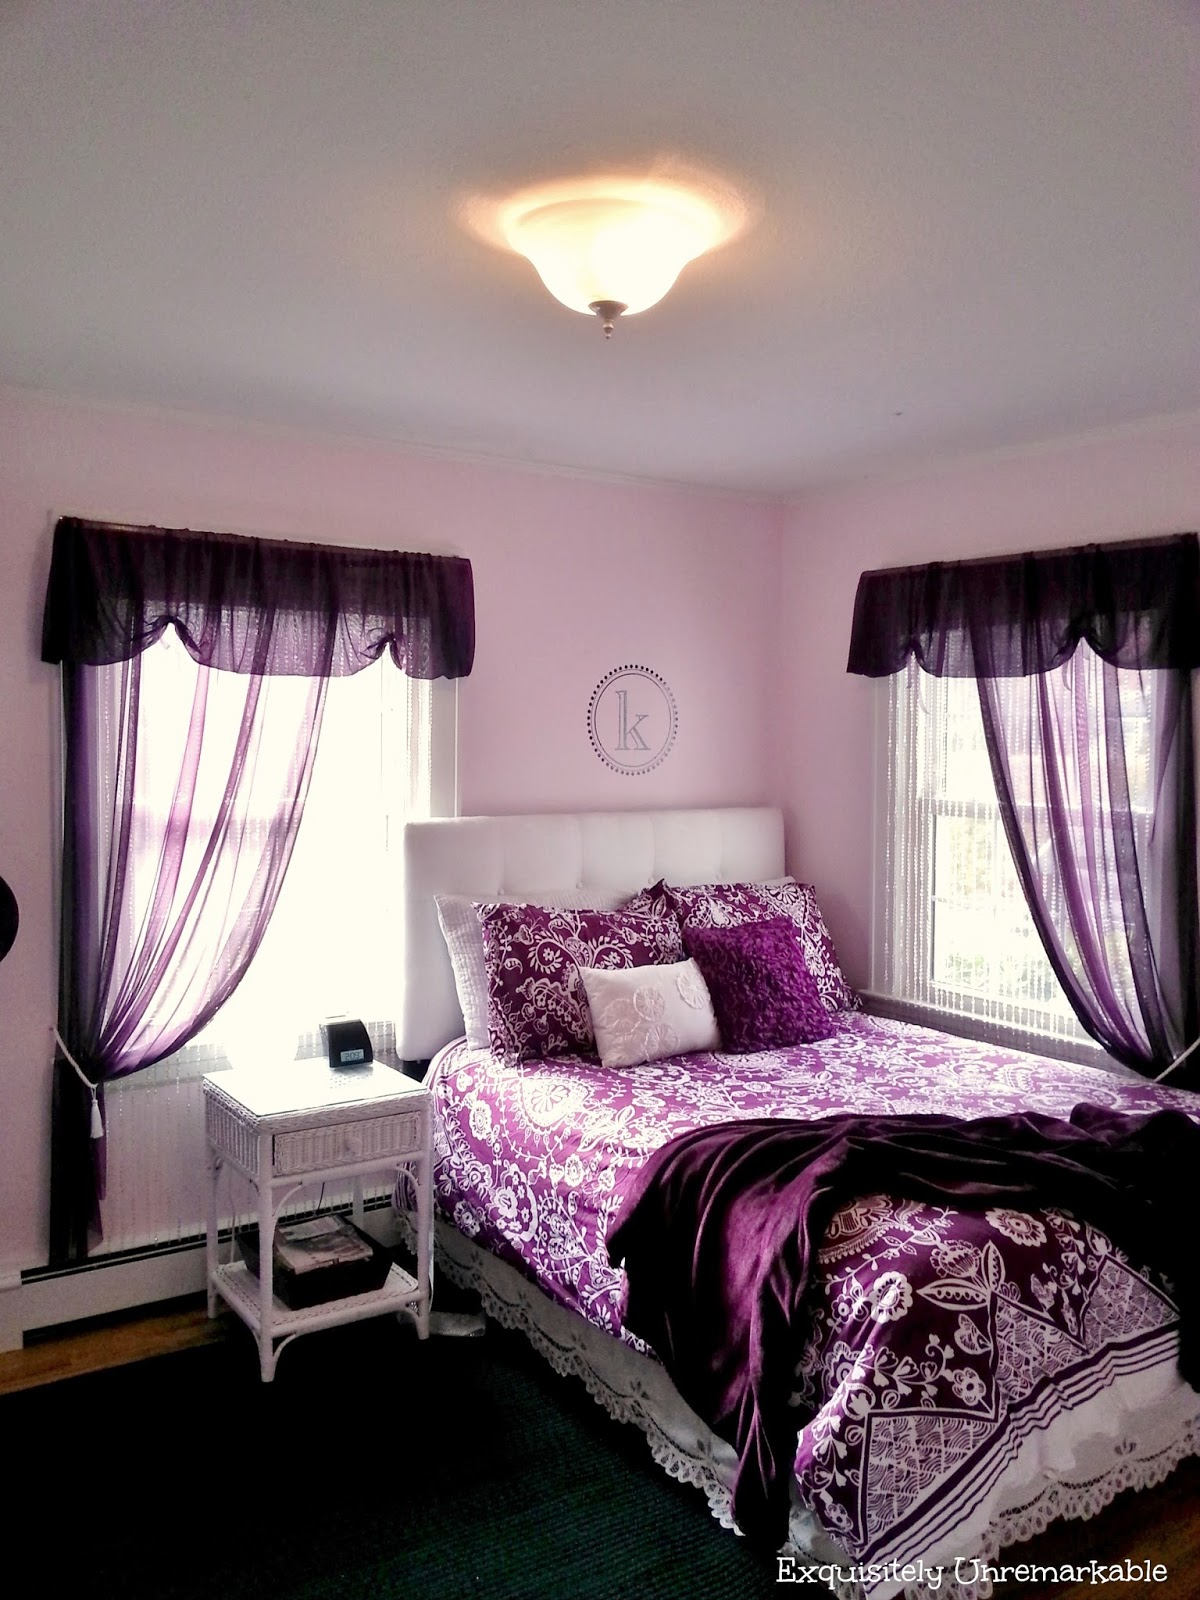 Kids Bedroom Paint Color Ideas Pretty In Purple Teen Bedroom Exquisitely Unremarkable